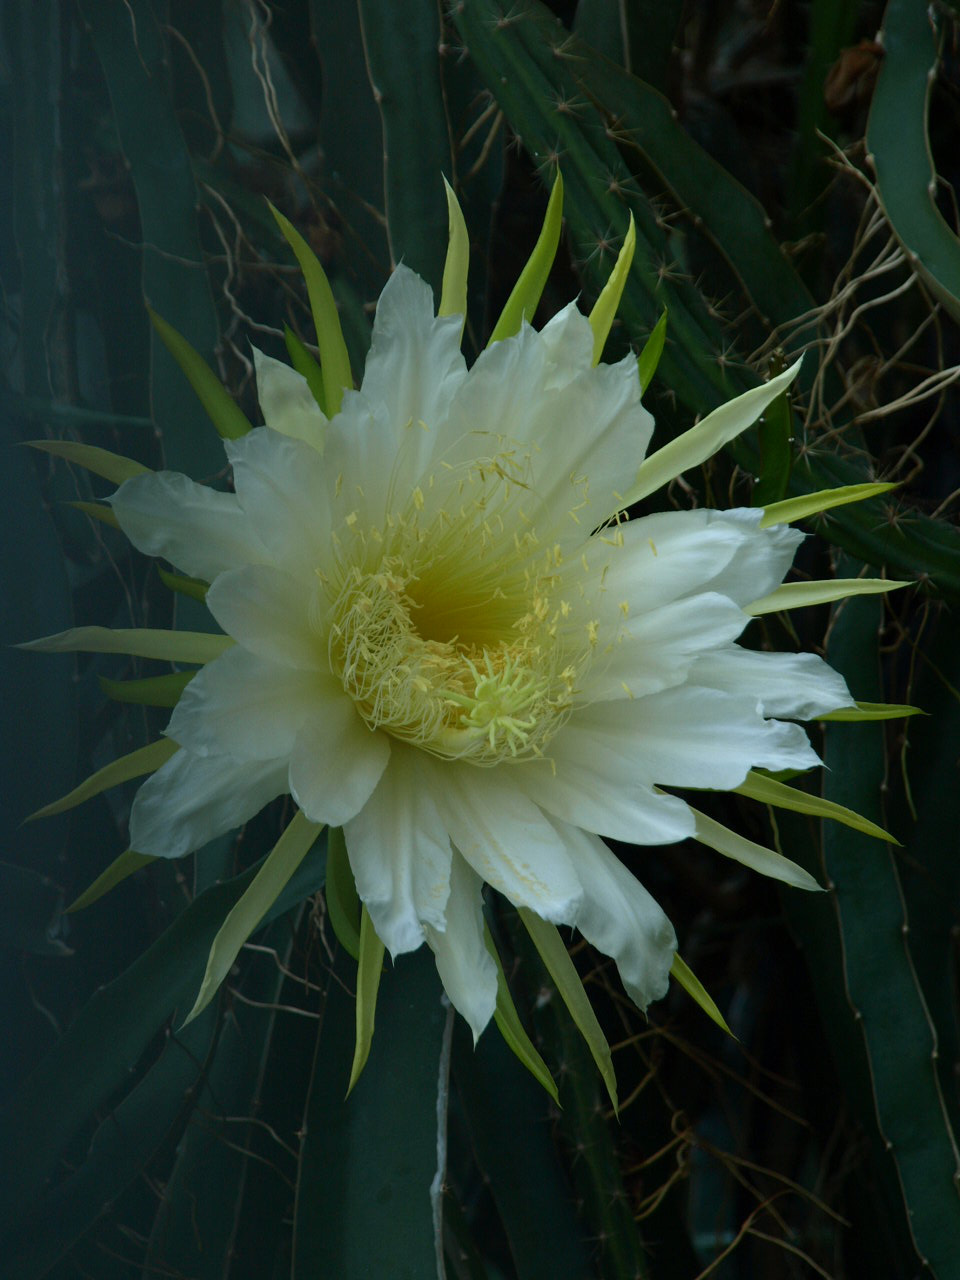 The diversity of opening and closing mechanisms found in angiosperm flowers are used as concept generators for bio-inspired technical folding and unfolding mechanisms; flower of the Bell of the Night (Hylocereus undatus, Cactaceae) (Plant Biomechanics Group Freiburg)